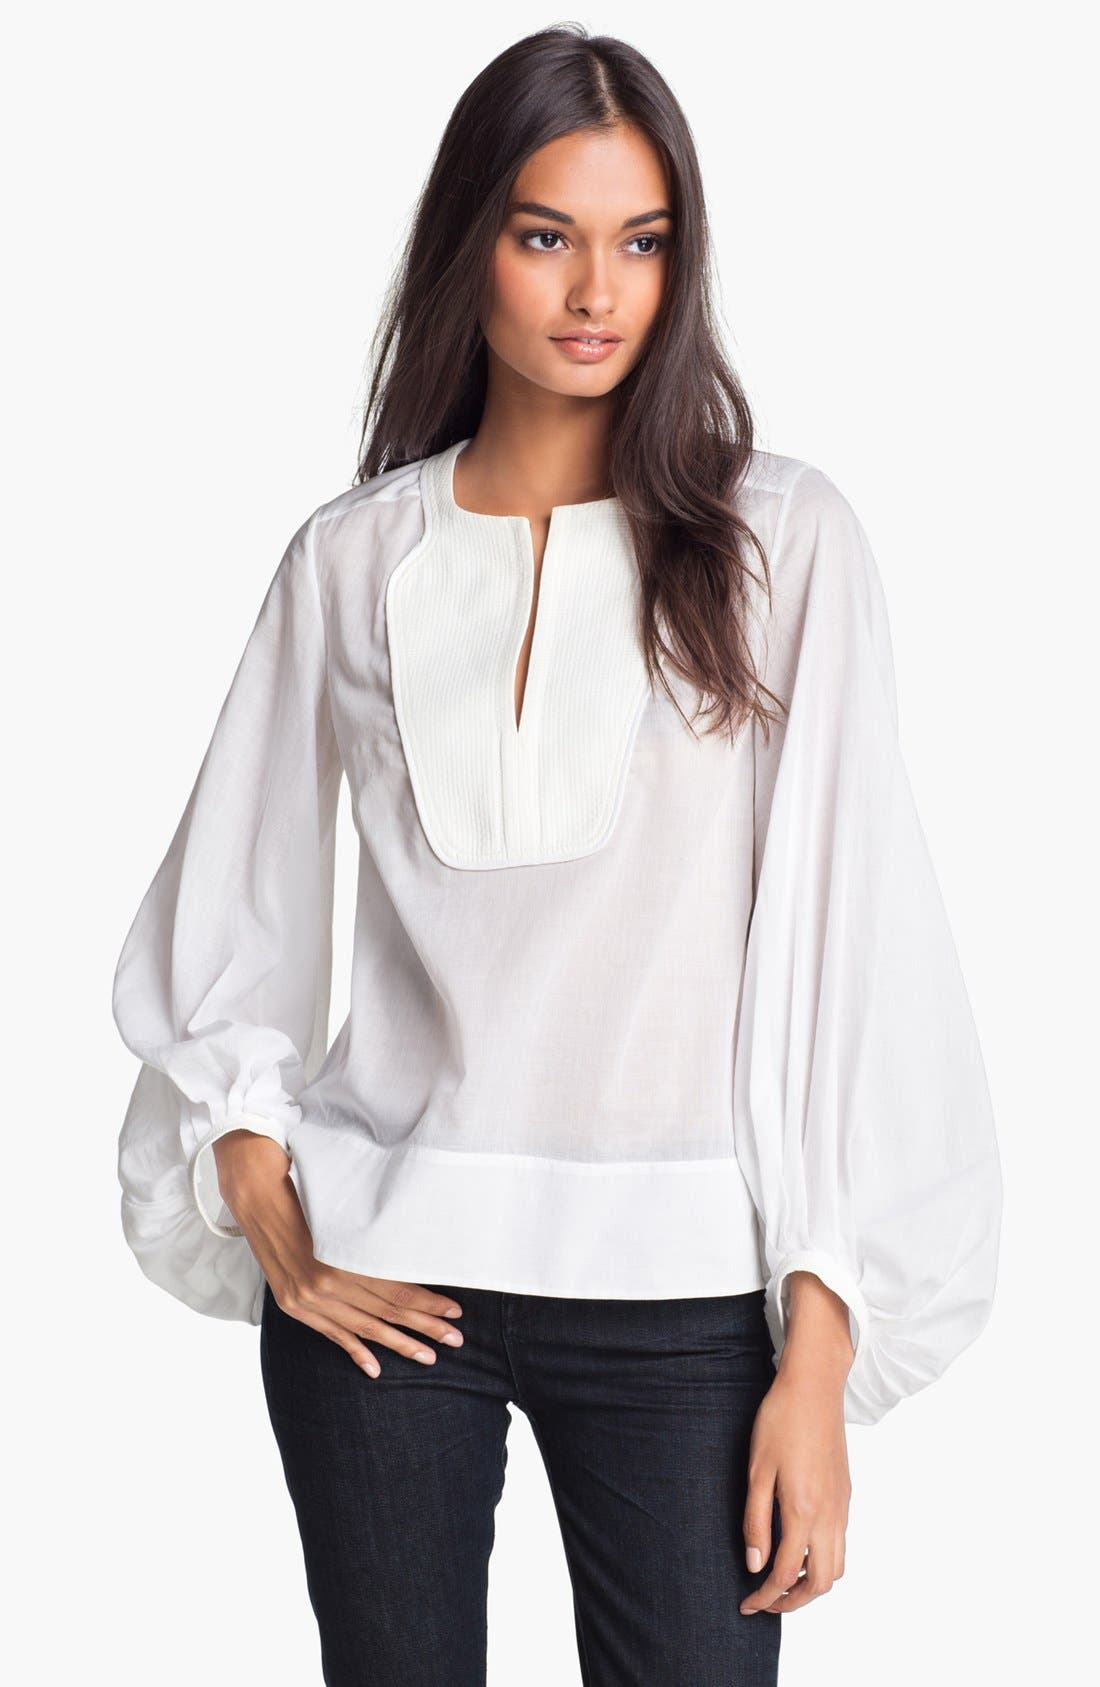 Alternate Image 1 Selected - Diane von Furstenberg 'Mallegra' Blouse